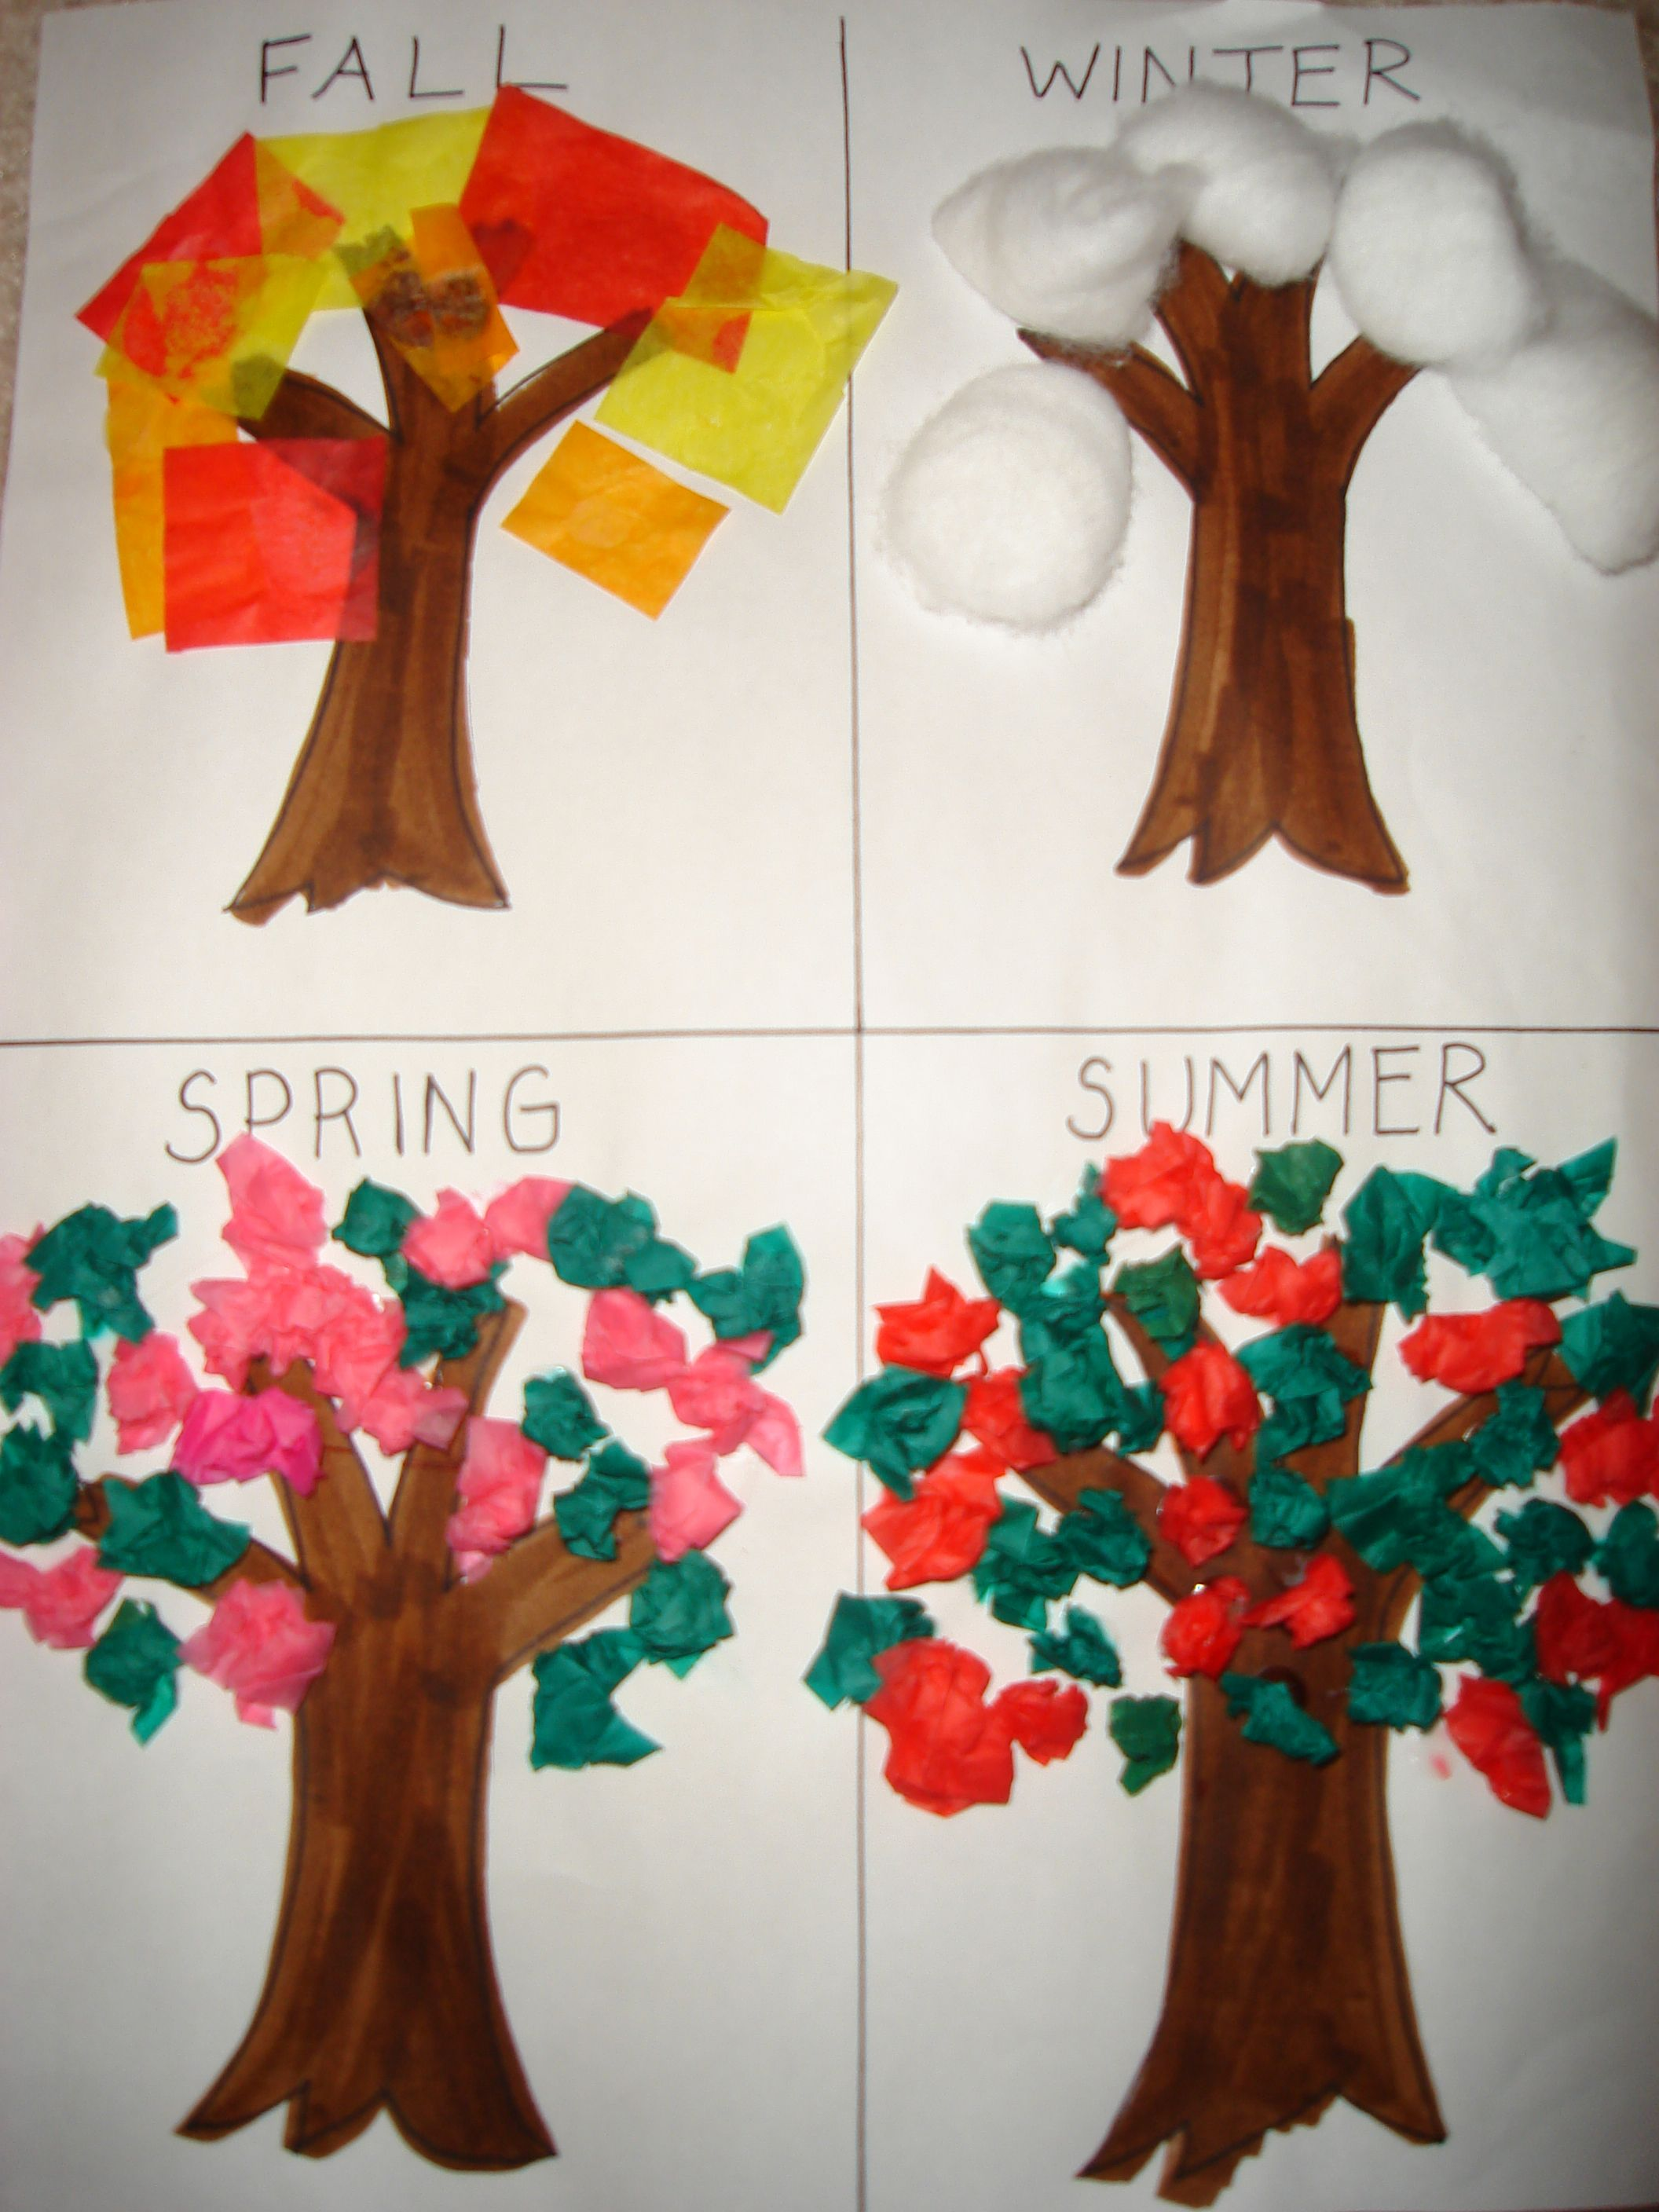 Seasons Activities With Kids Is A Great Way To Teach Children About Our Environment And Nature